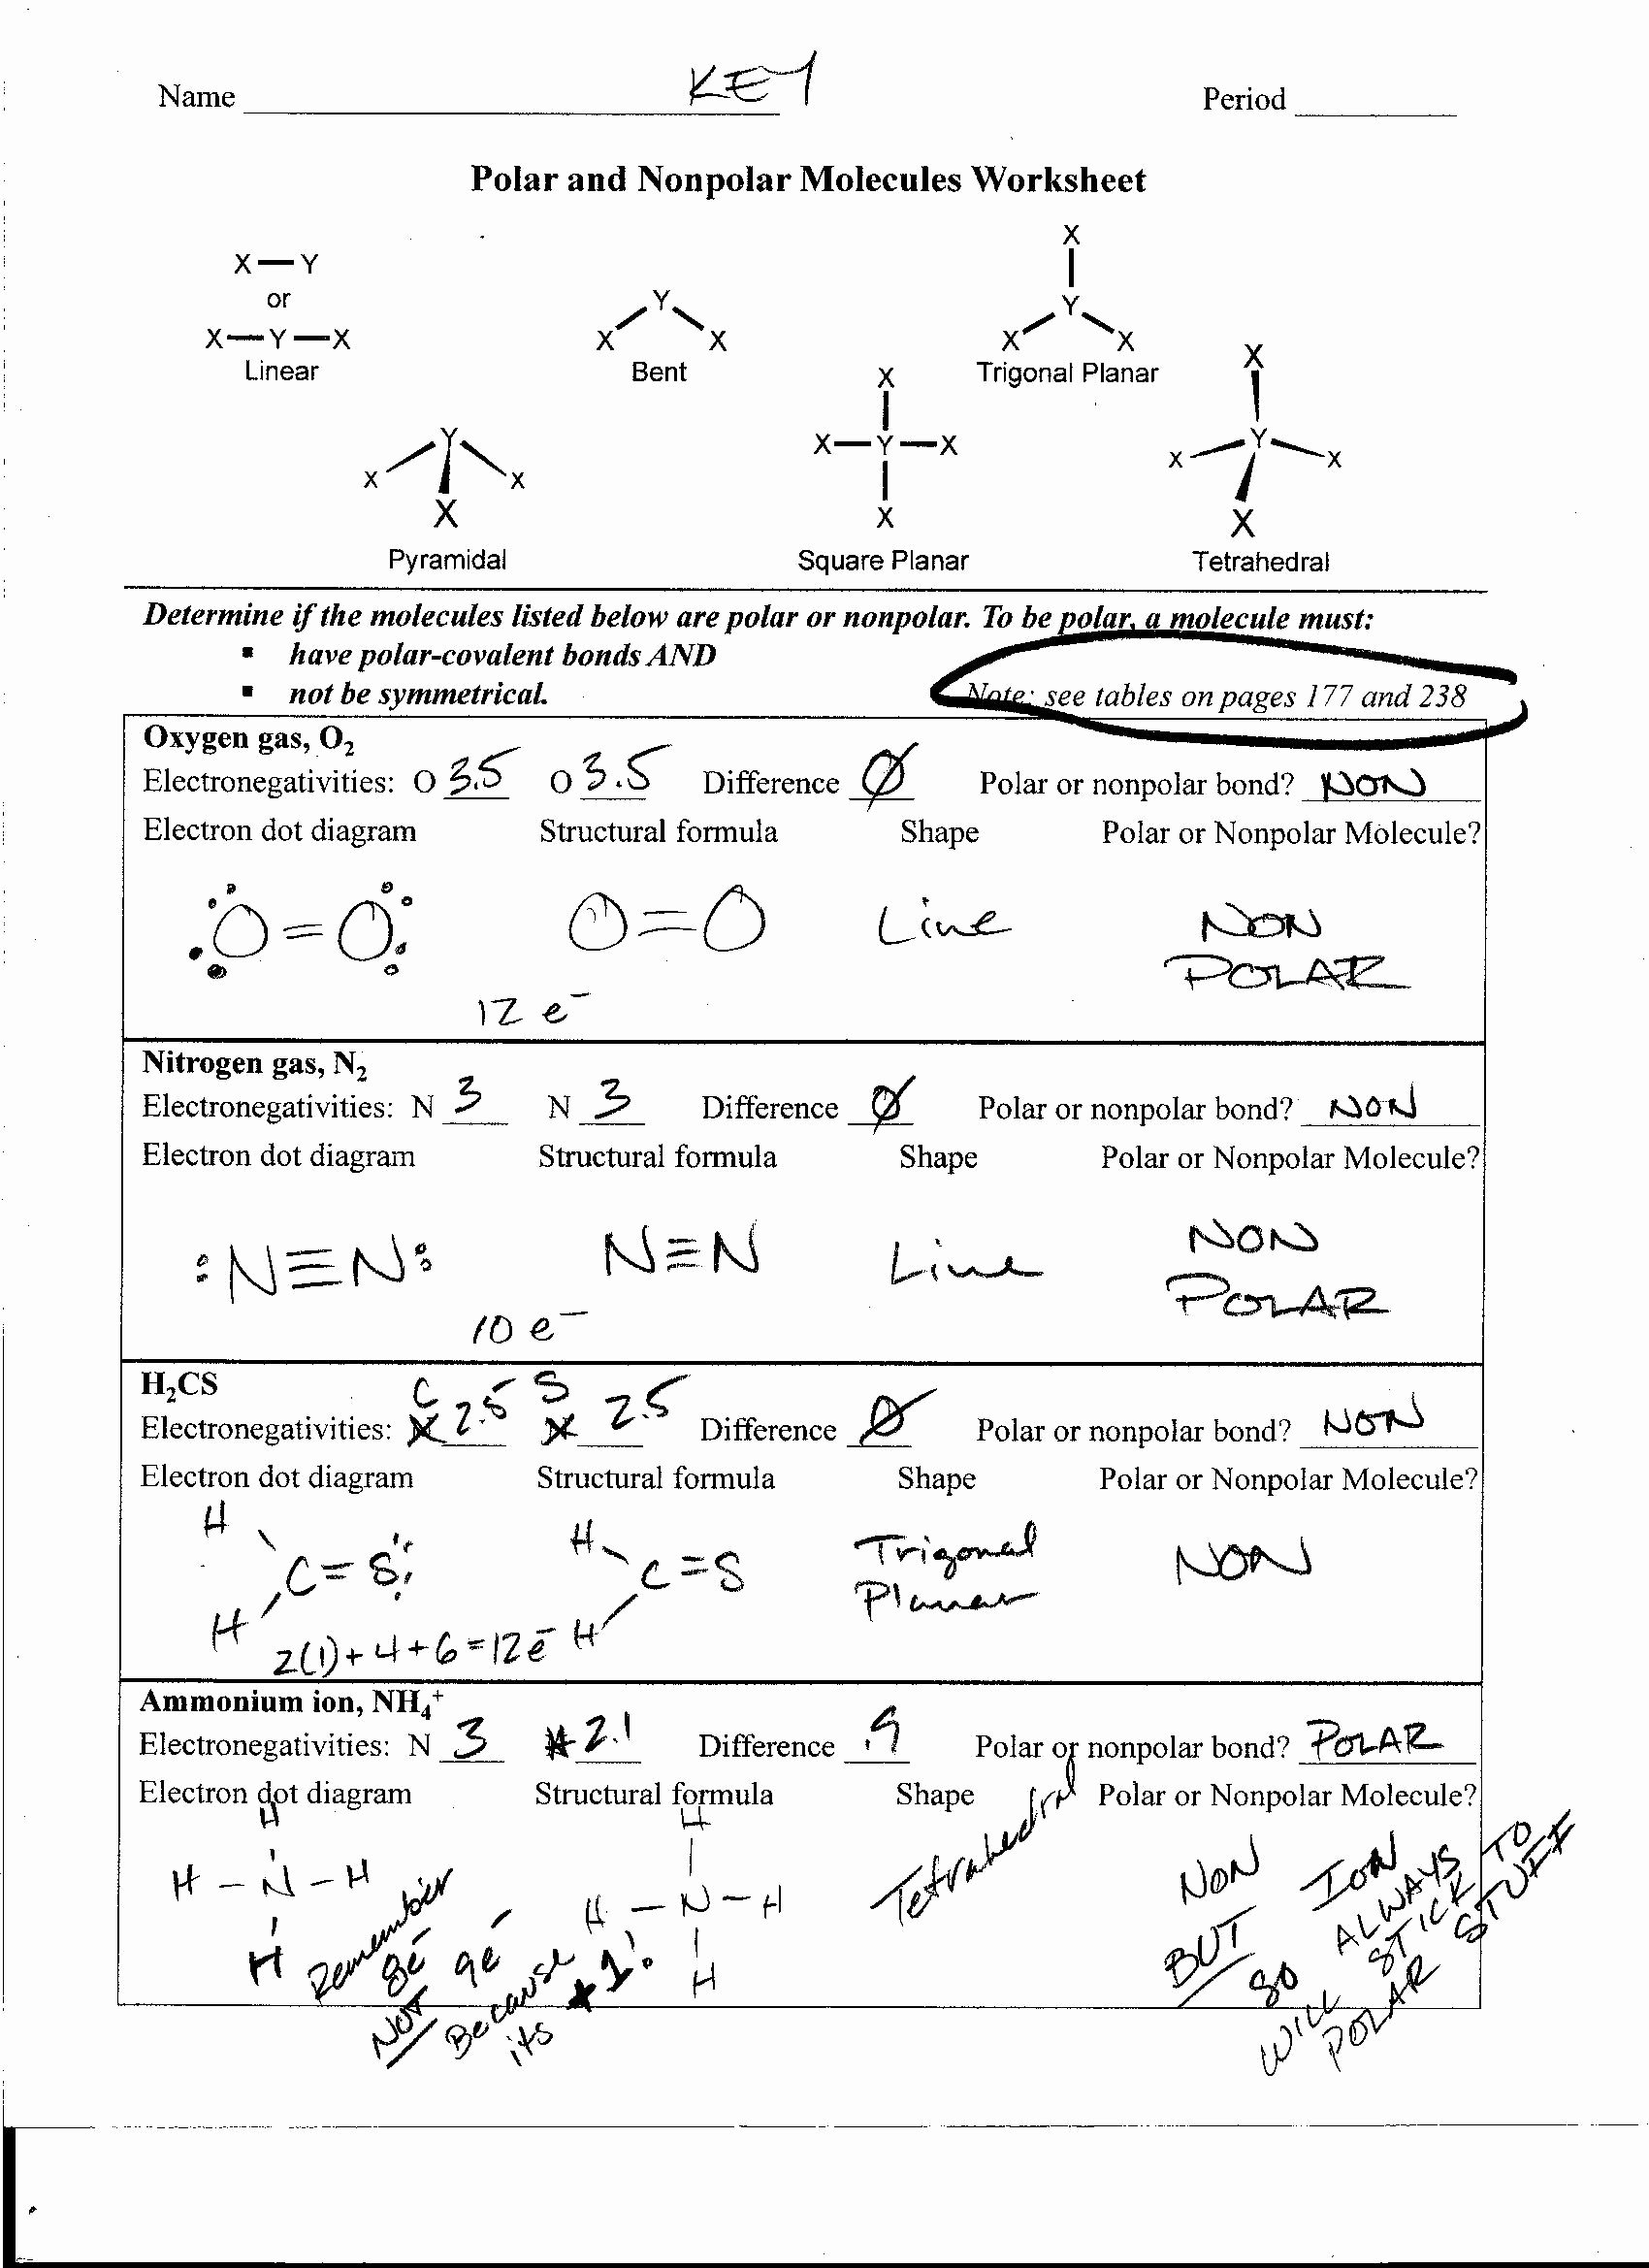 Worksheet Polarity Of Bonds Answers Elegant Polar and Nonpolar Molecules Worksheet